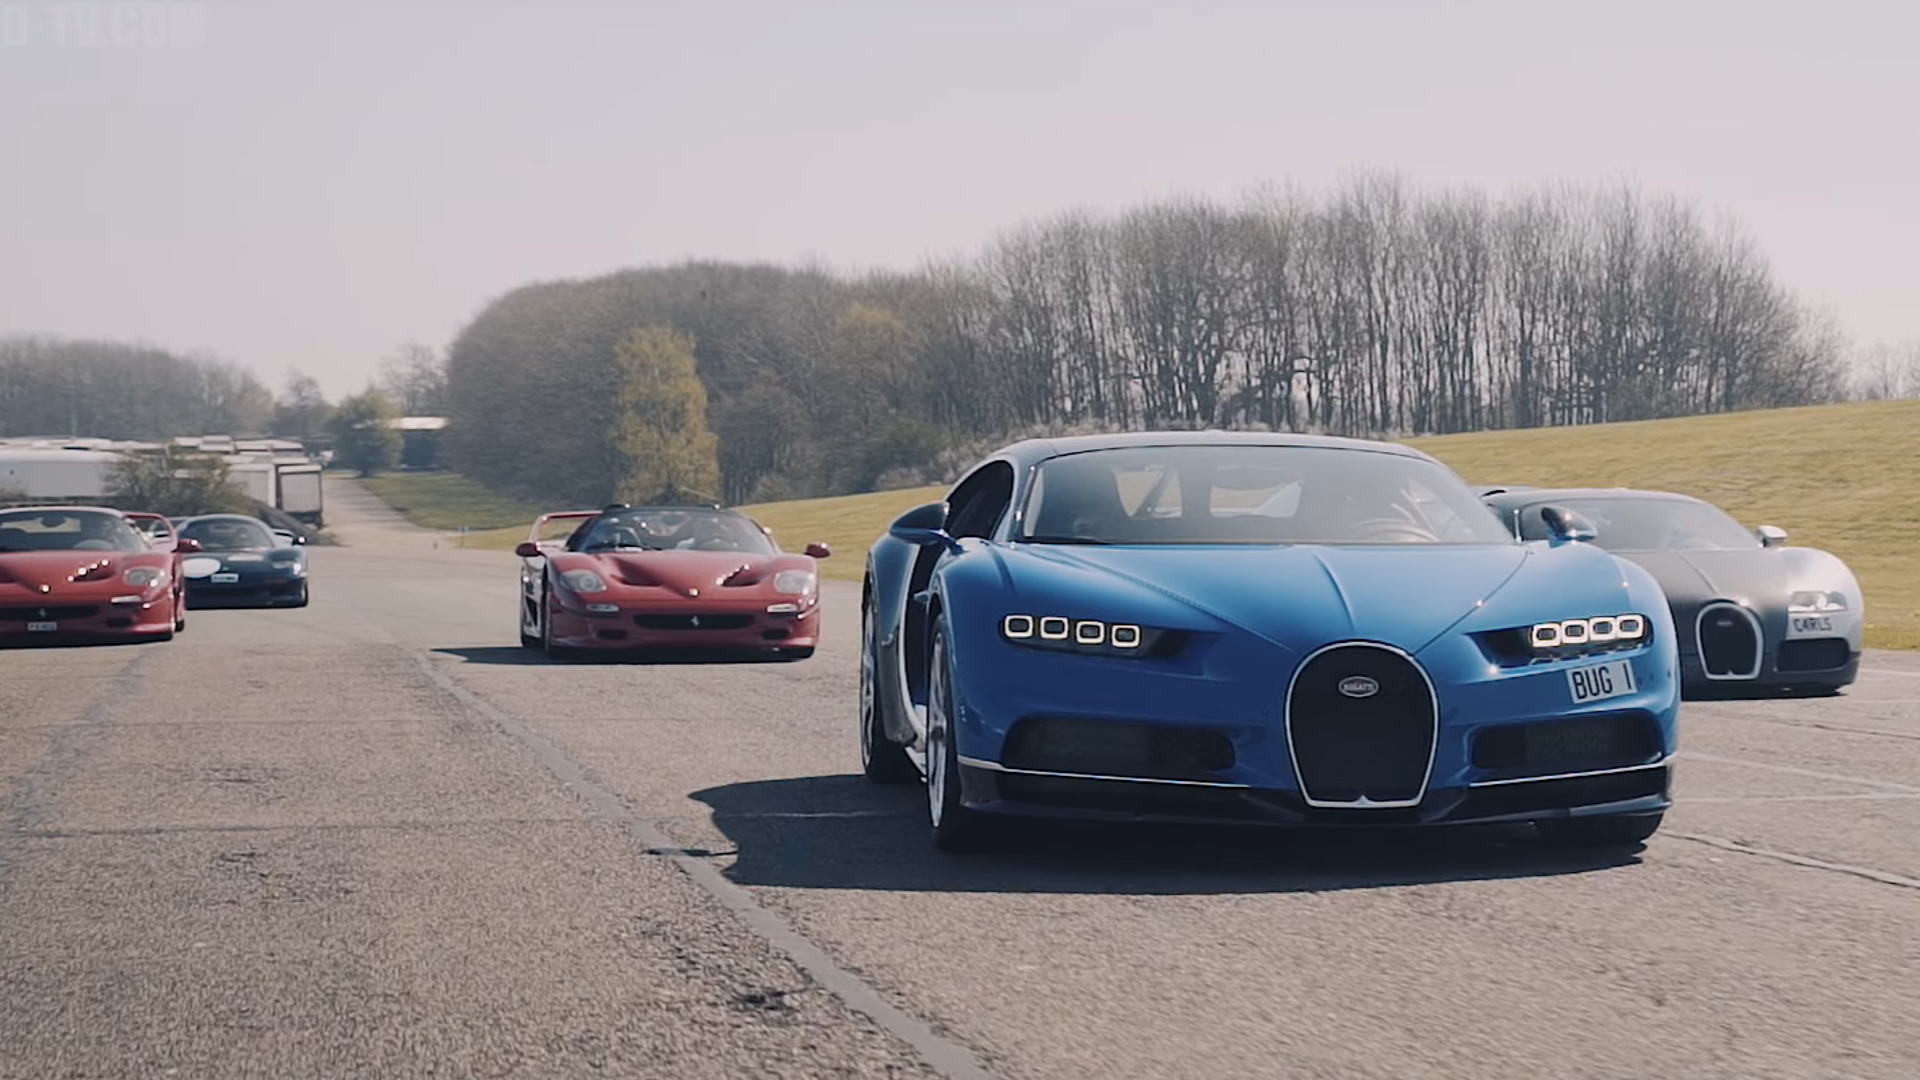 Here S What A 64 Million Supercar Photo Shoot Looks Like